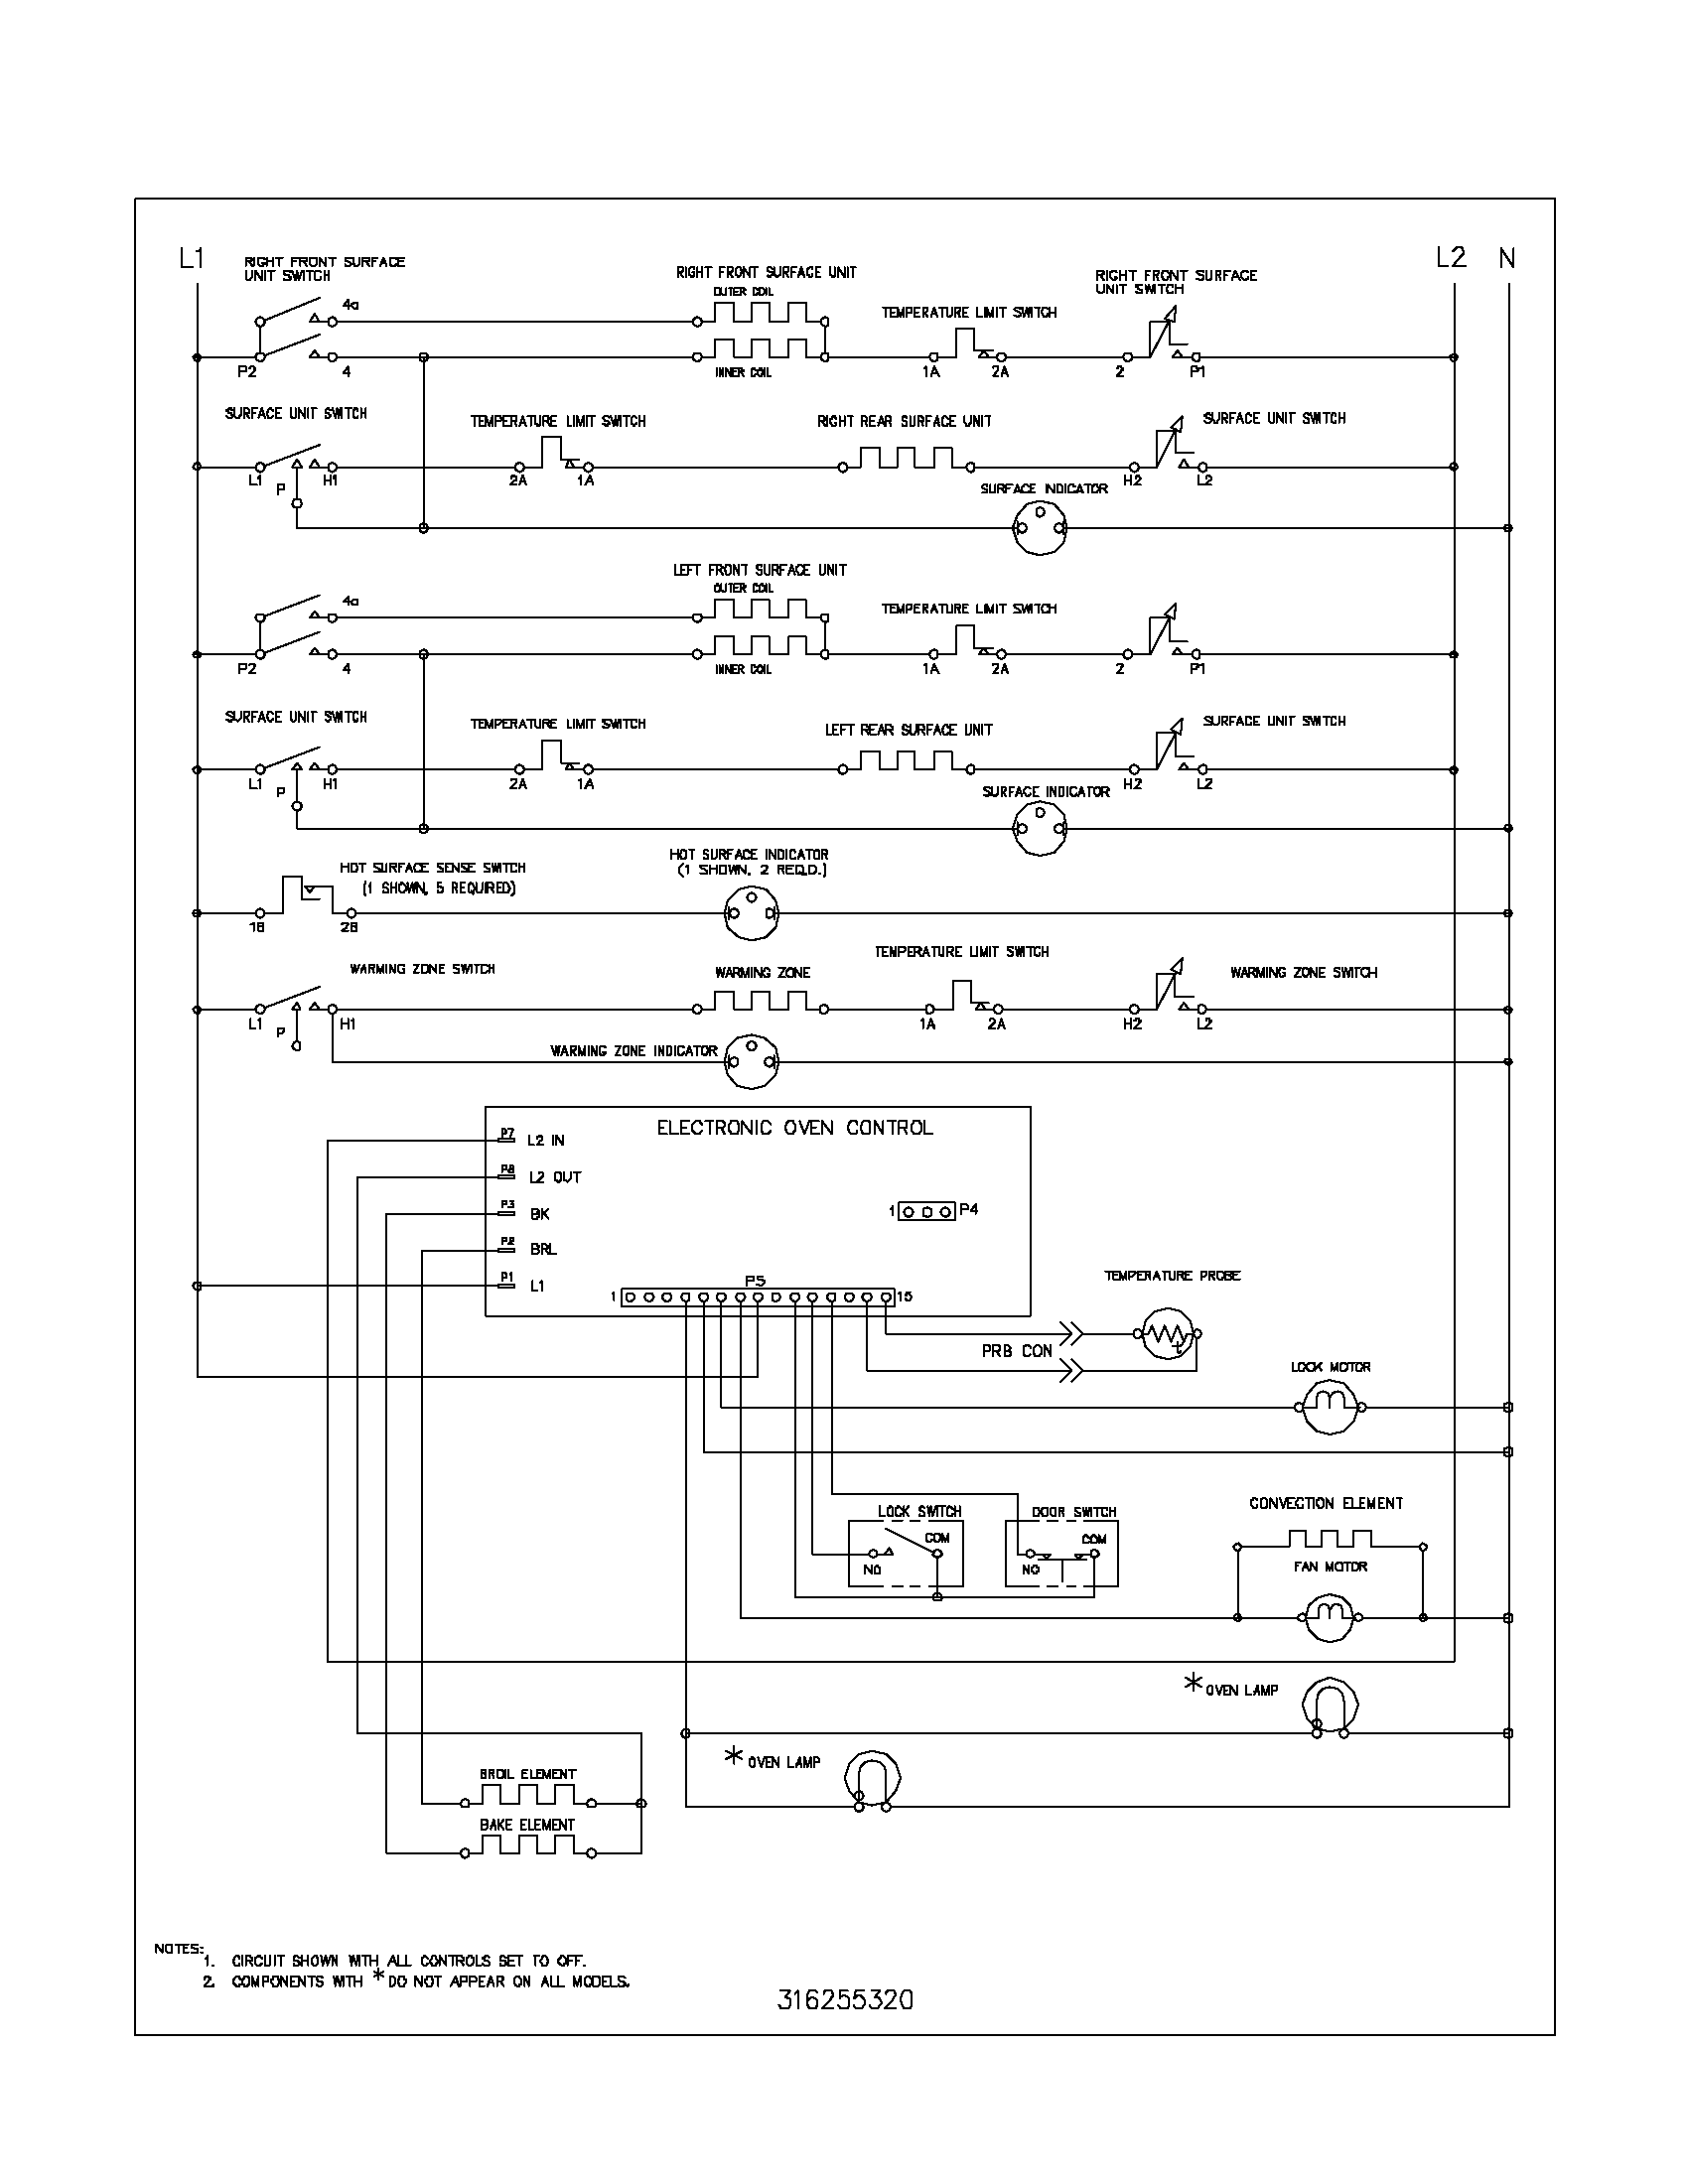 wiring schematic parts whirlpool fefl88acc electric range timer stove clocks and whirlpool refrigerator wiring schematic at n-0.co